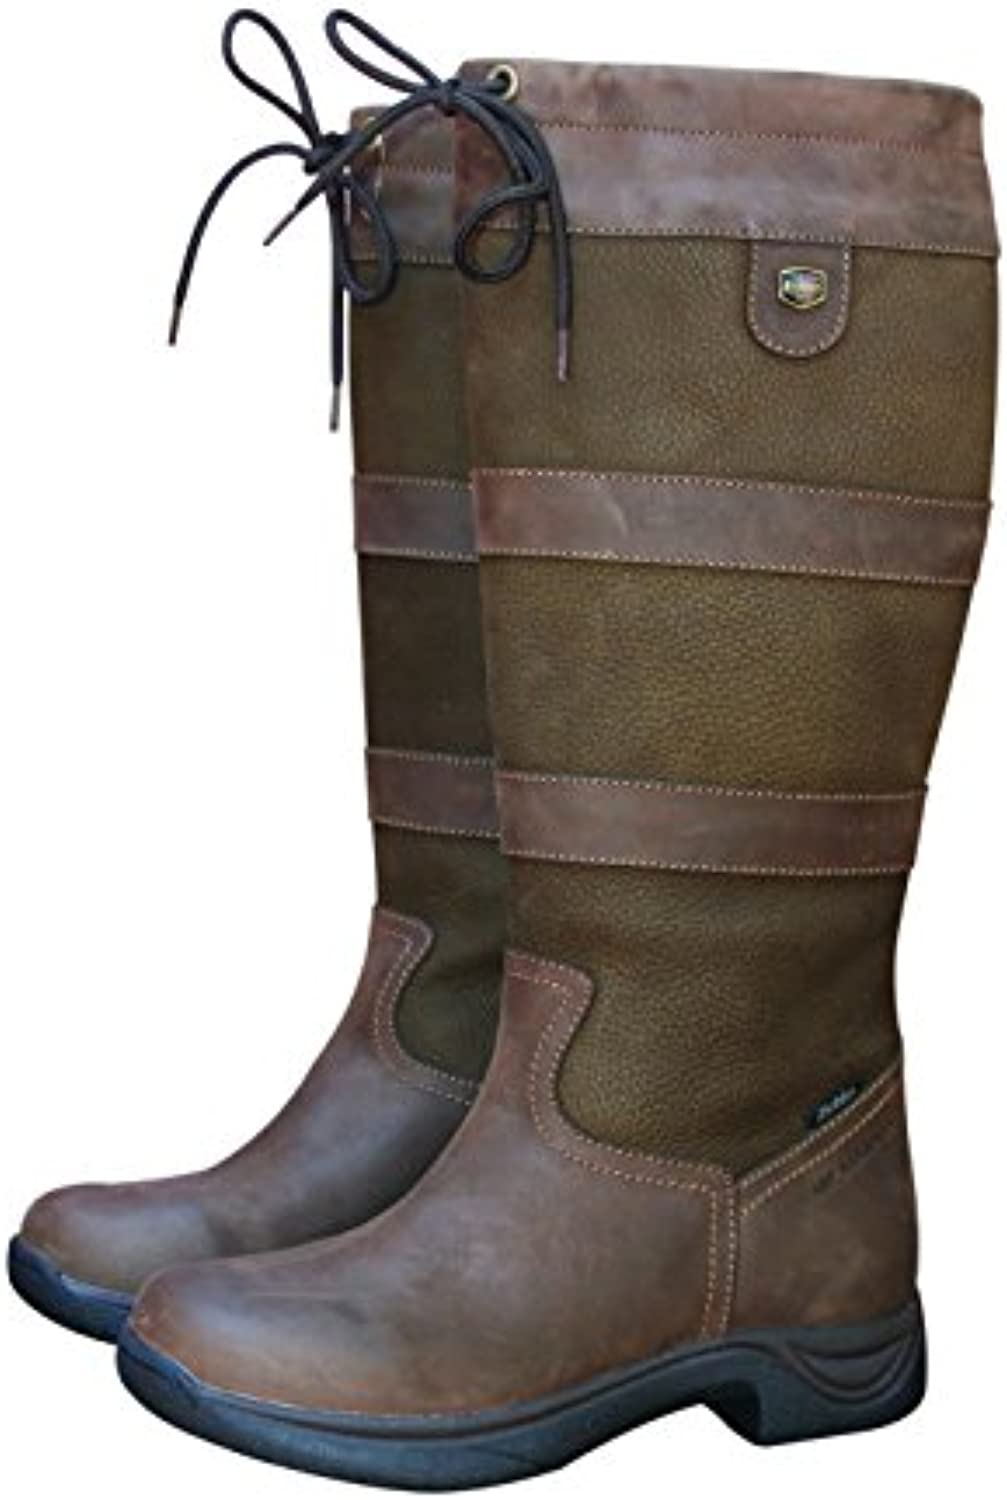 Dublin, botas para hombre marrón chocolate, Marrón chocolate, UK 6 / EU 39 -Wide